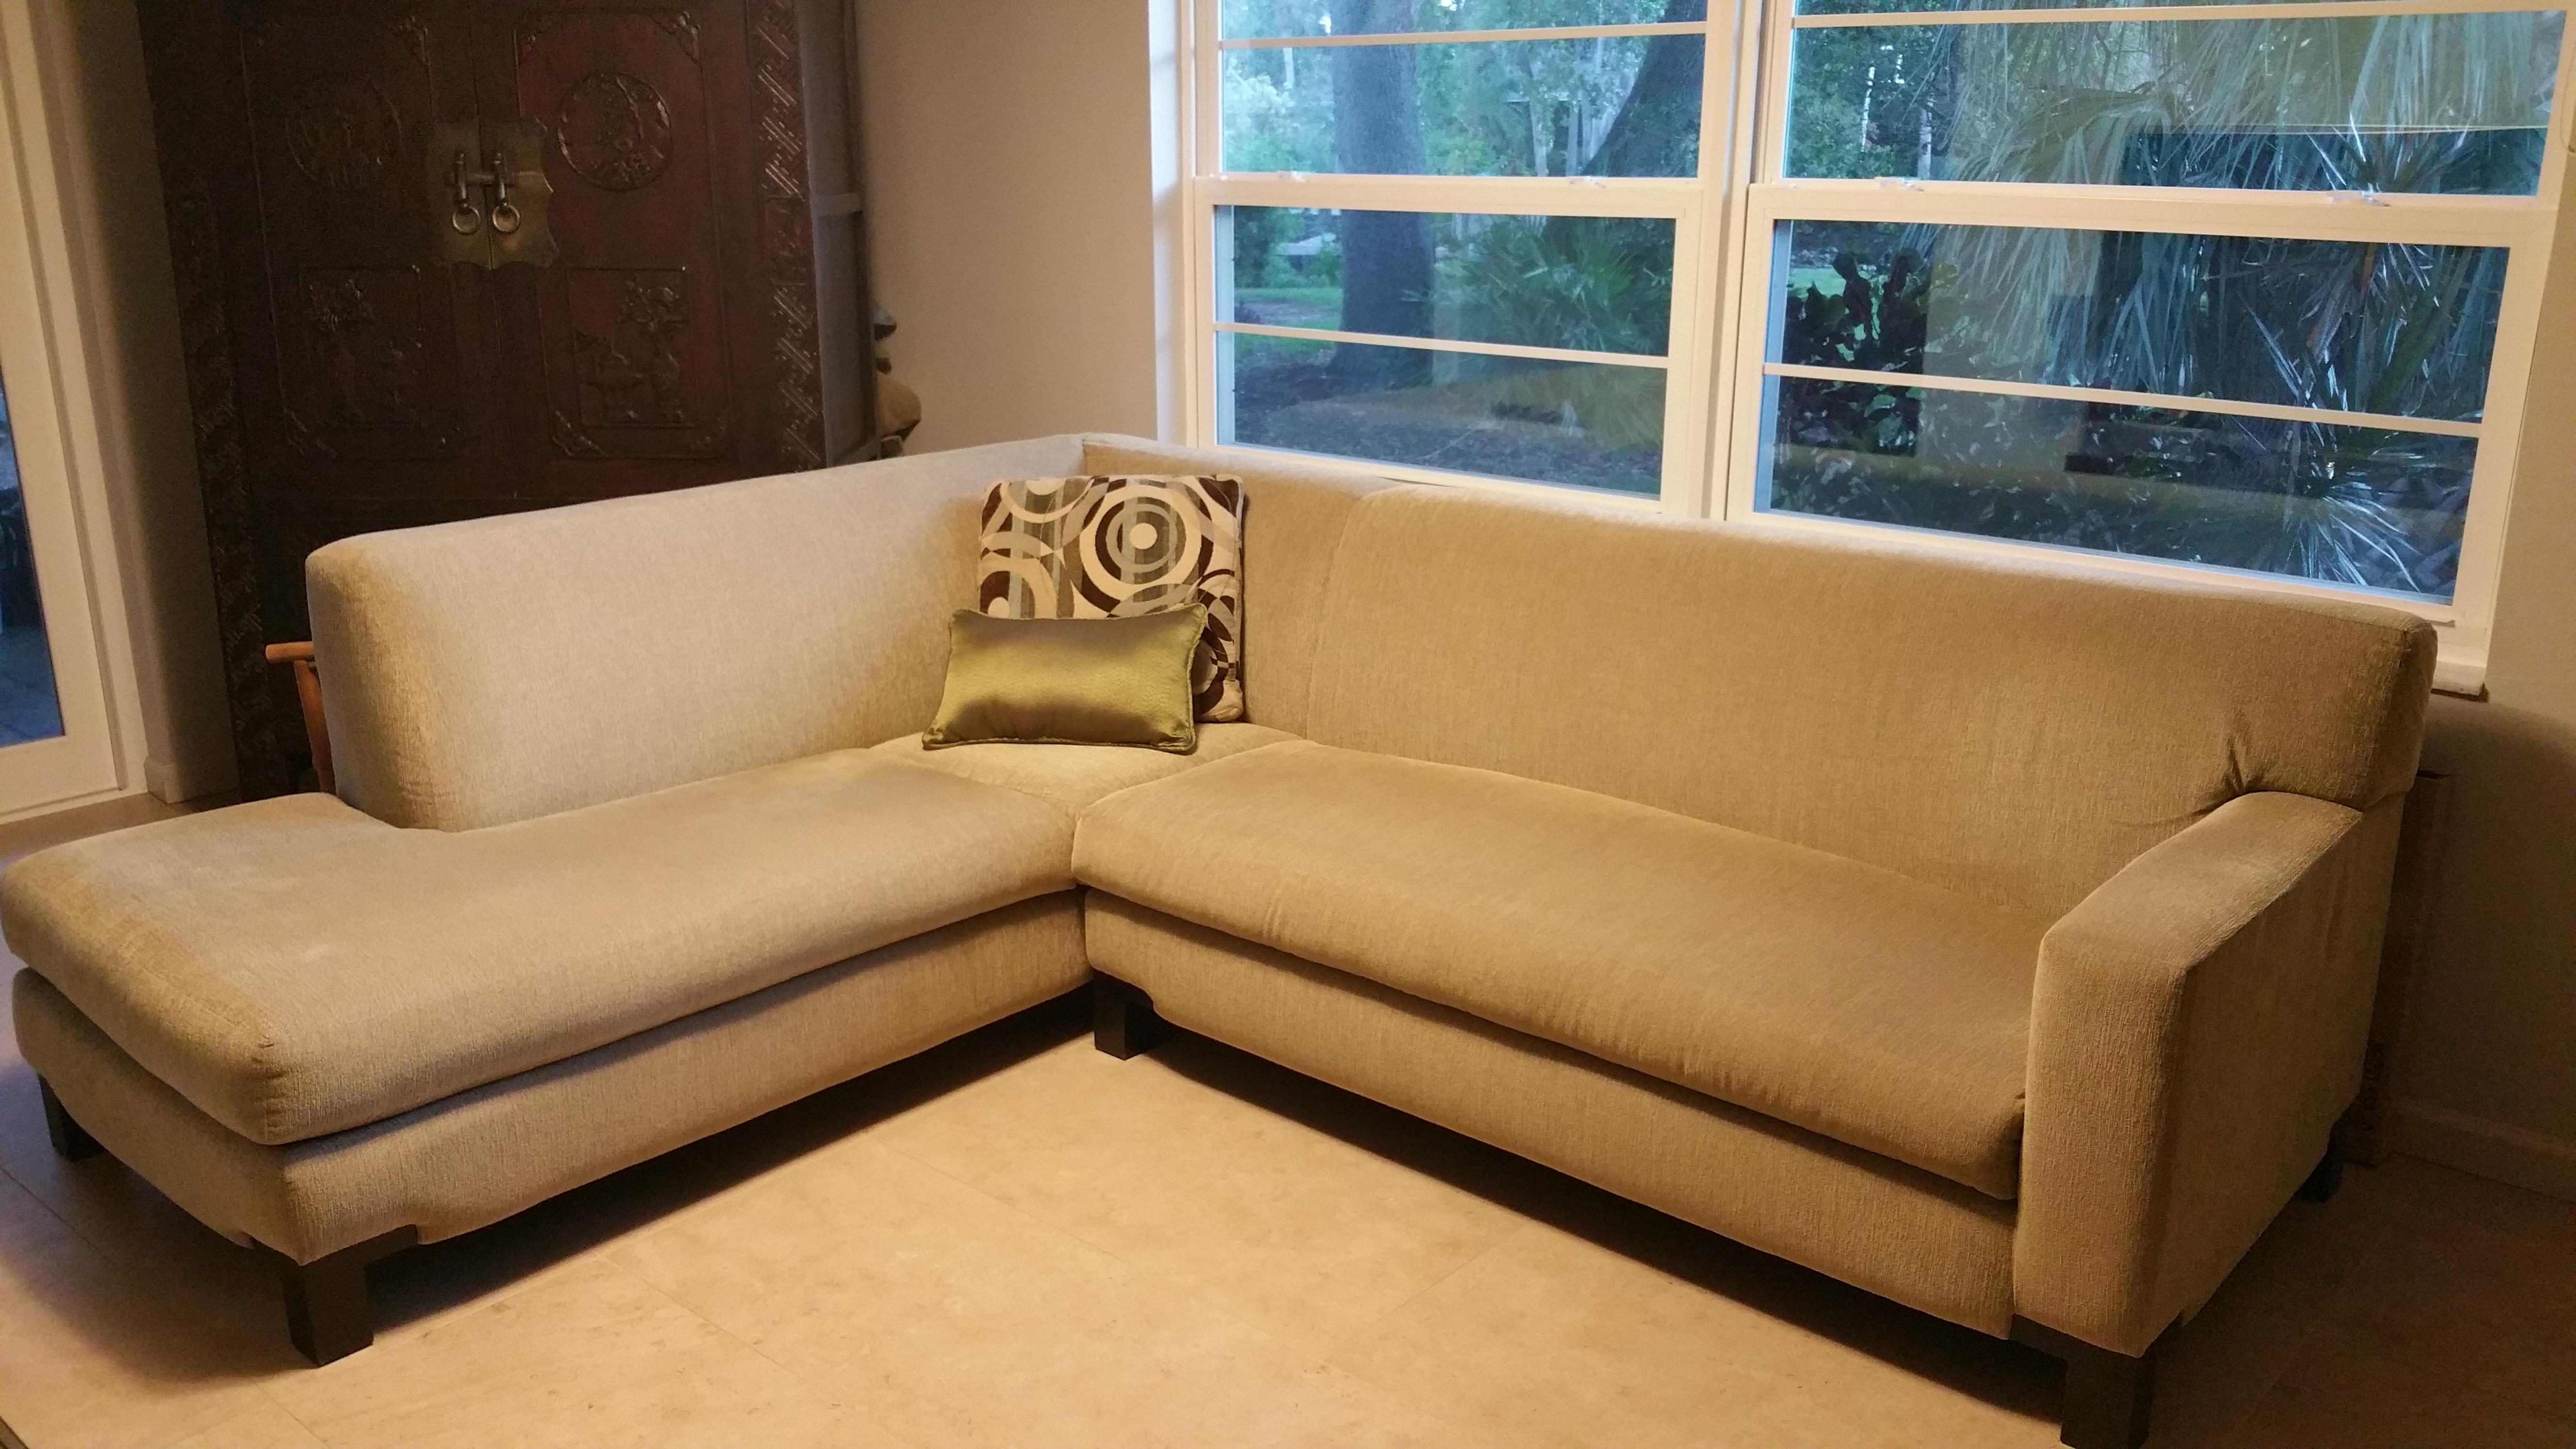 Large Modern Transitional Sectional Sofa Or Chaise For Sale In Tampa    Image 6 Of 9